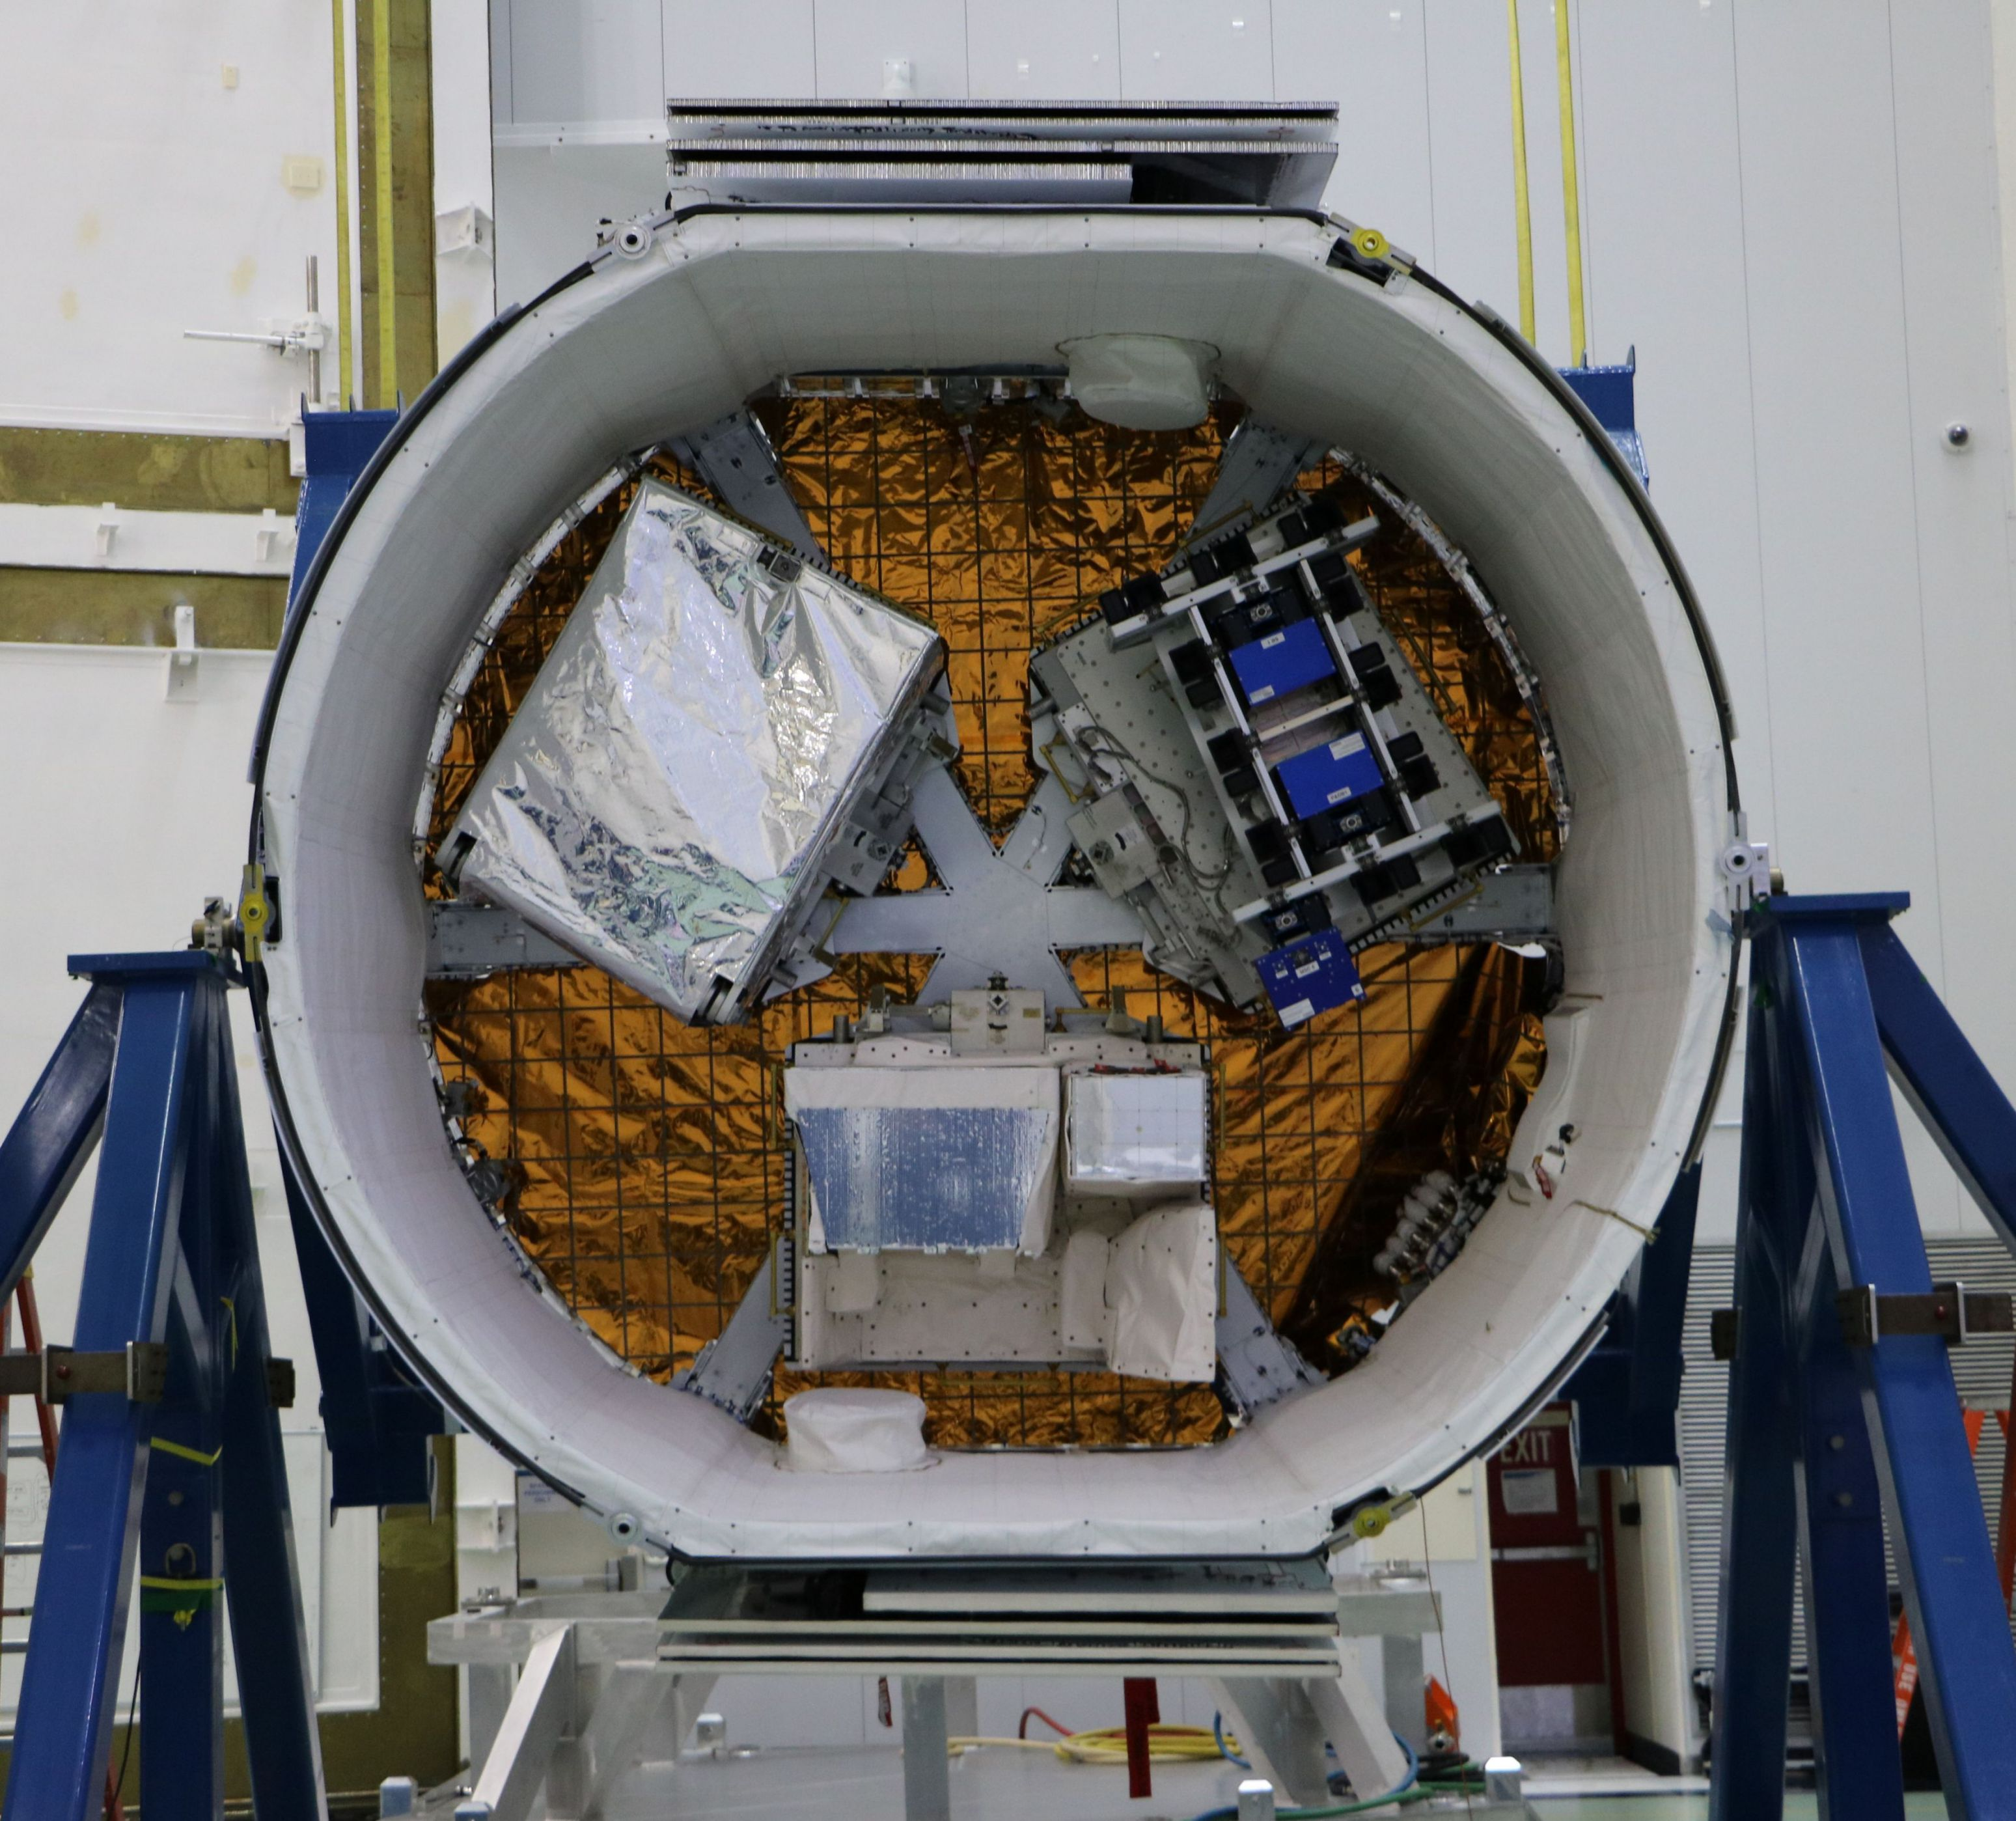 CRS14 Dragon trunk (ESA)